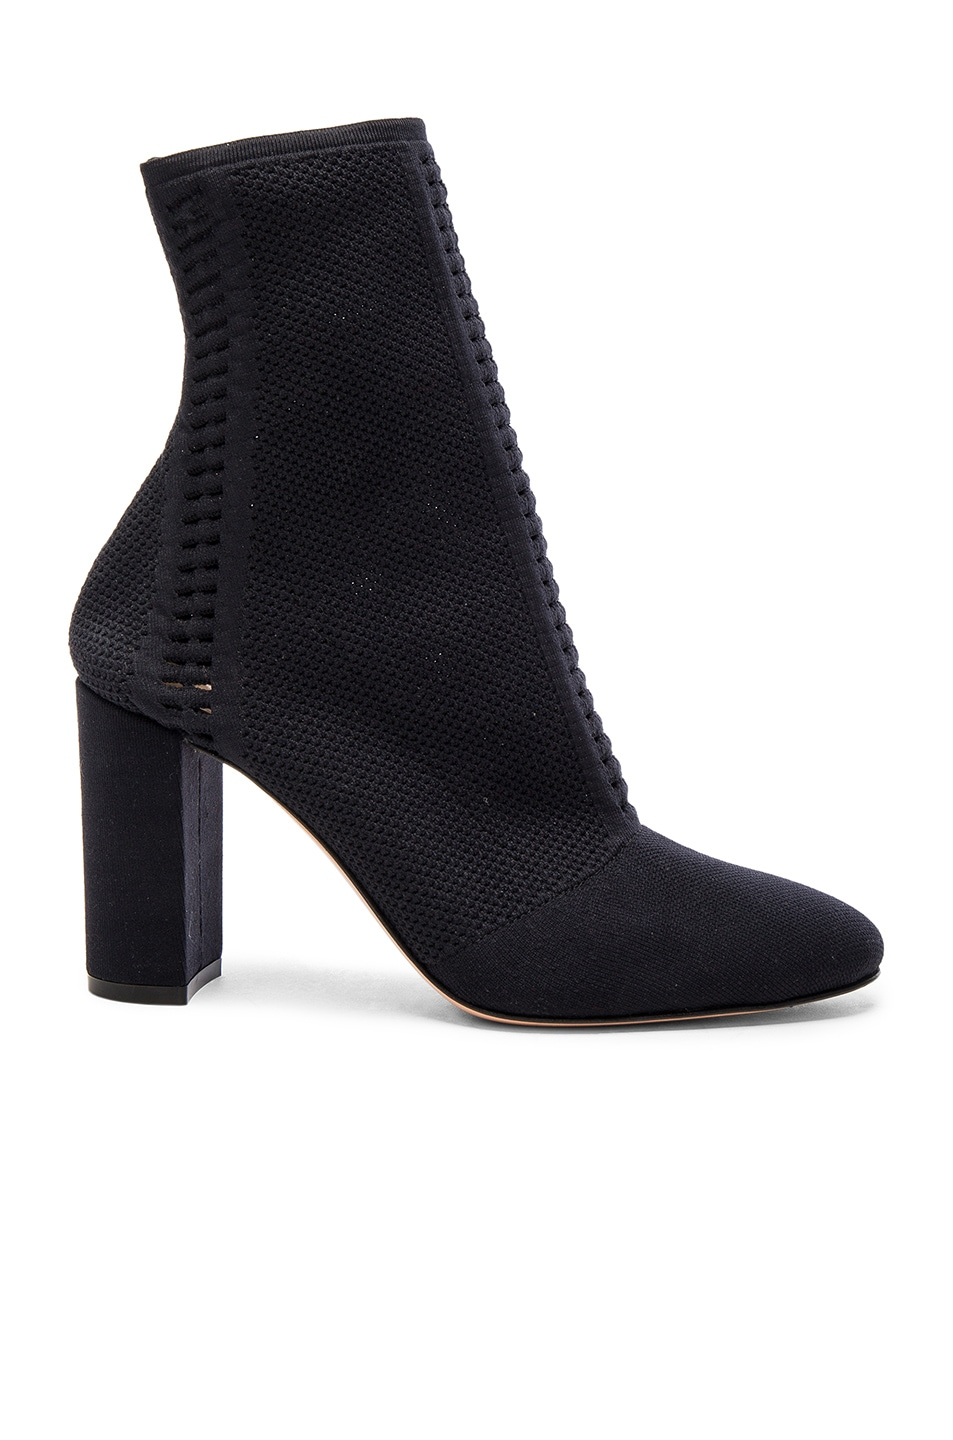 Image 1 of Gianvito Rossi Knit Block Heel Booties in Black